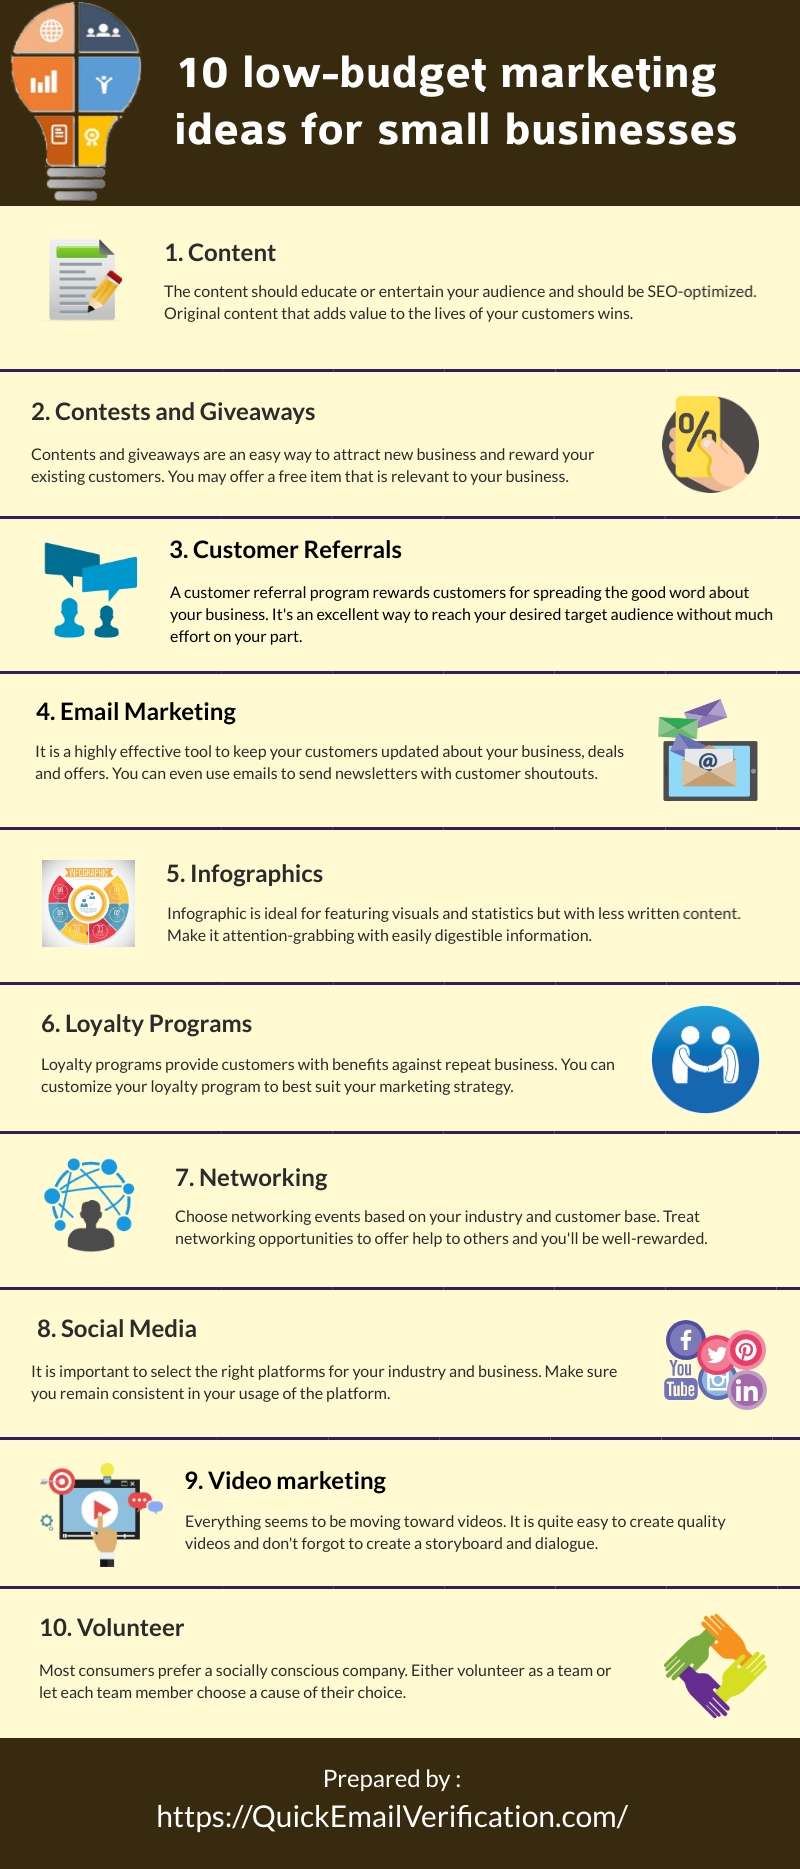 Infographic_low_budget_marketing_ideas_for_small_businesses